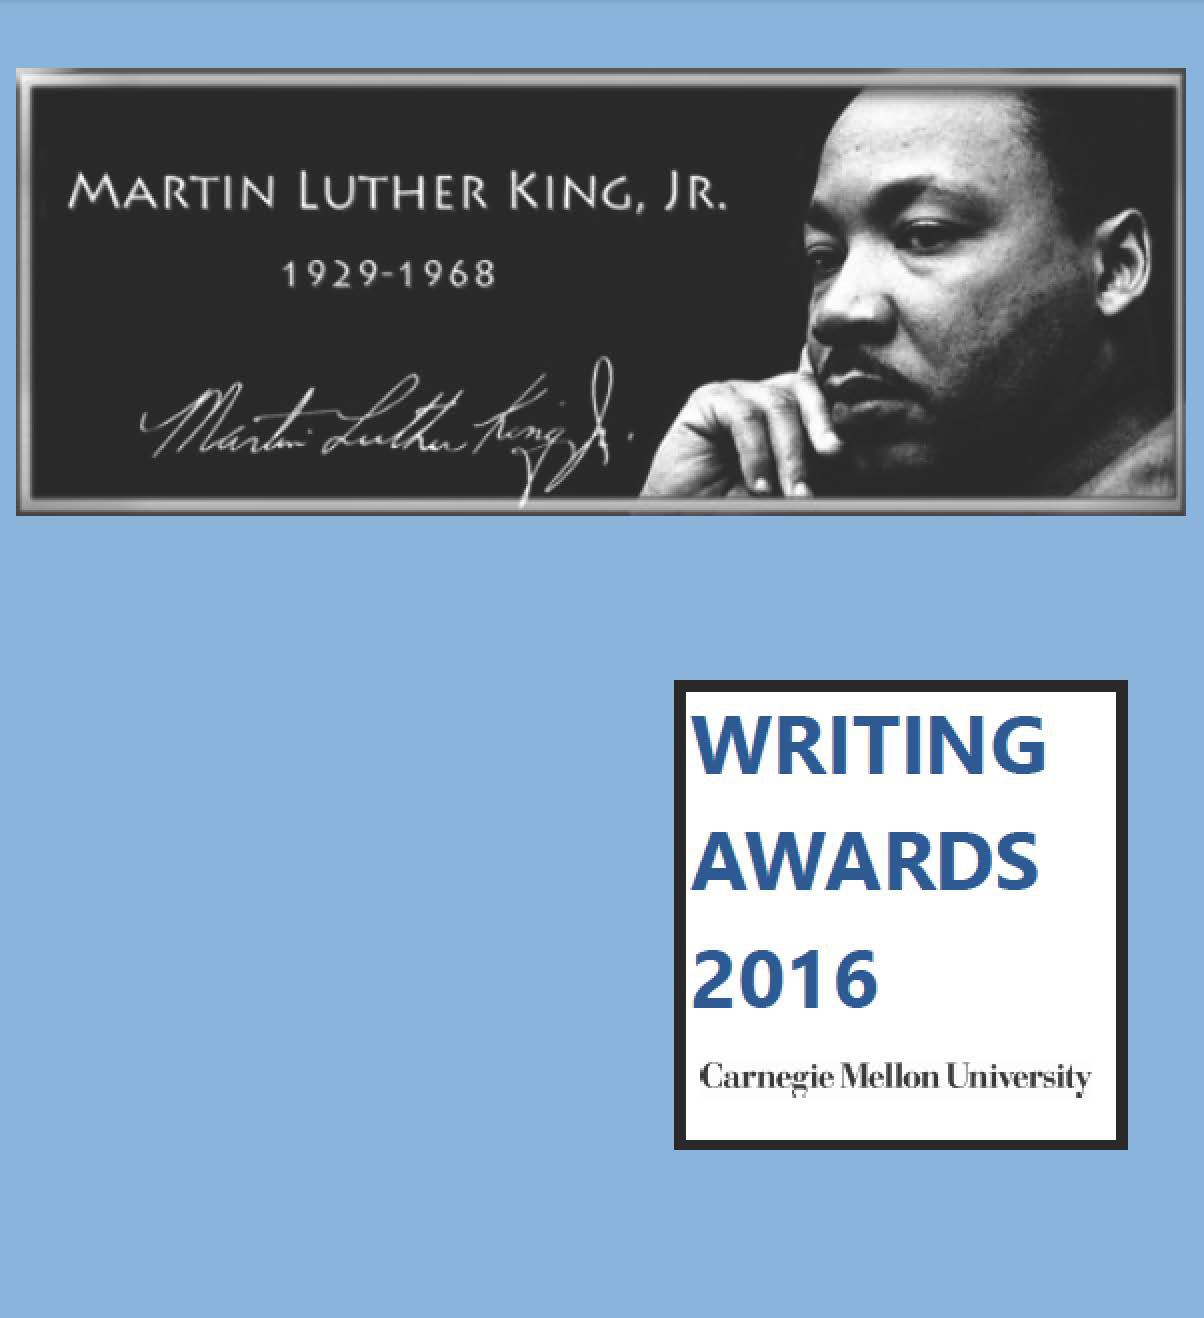 MLK writing awards